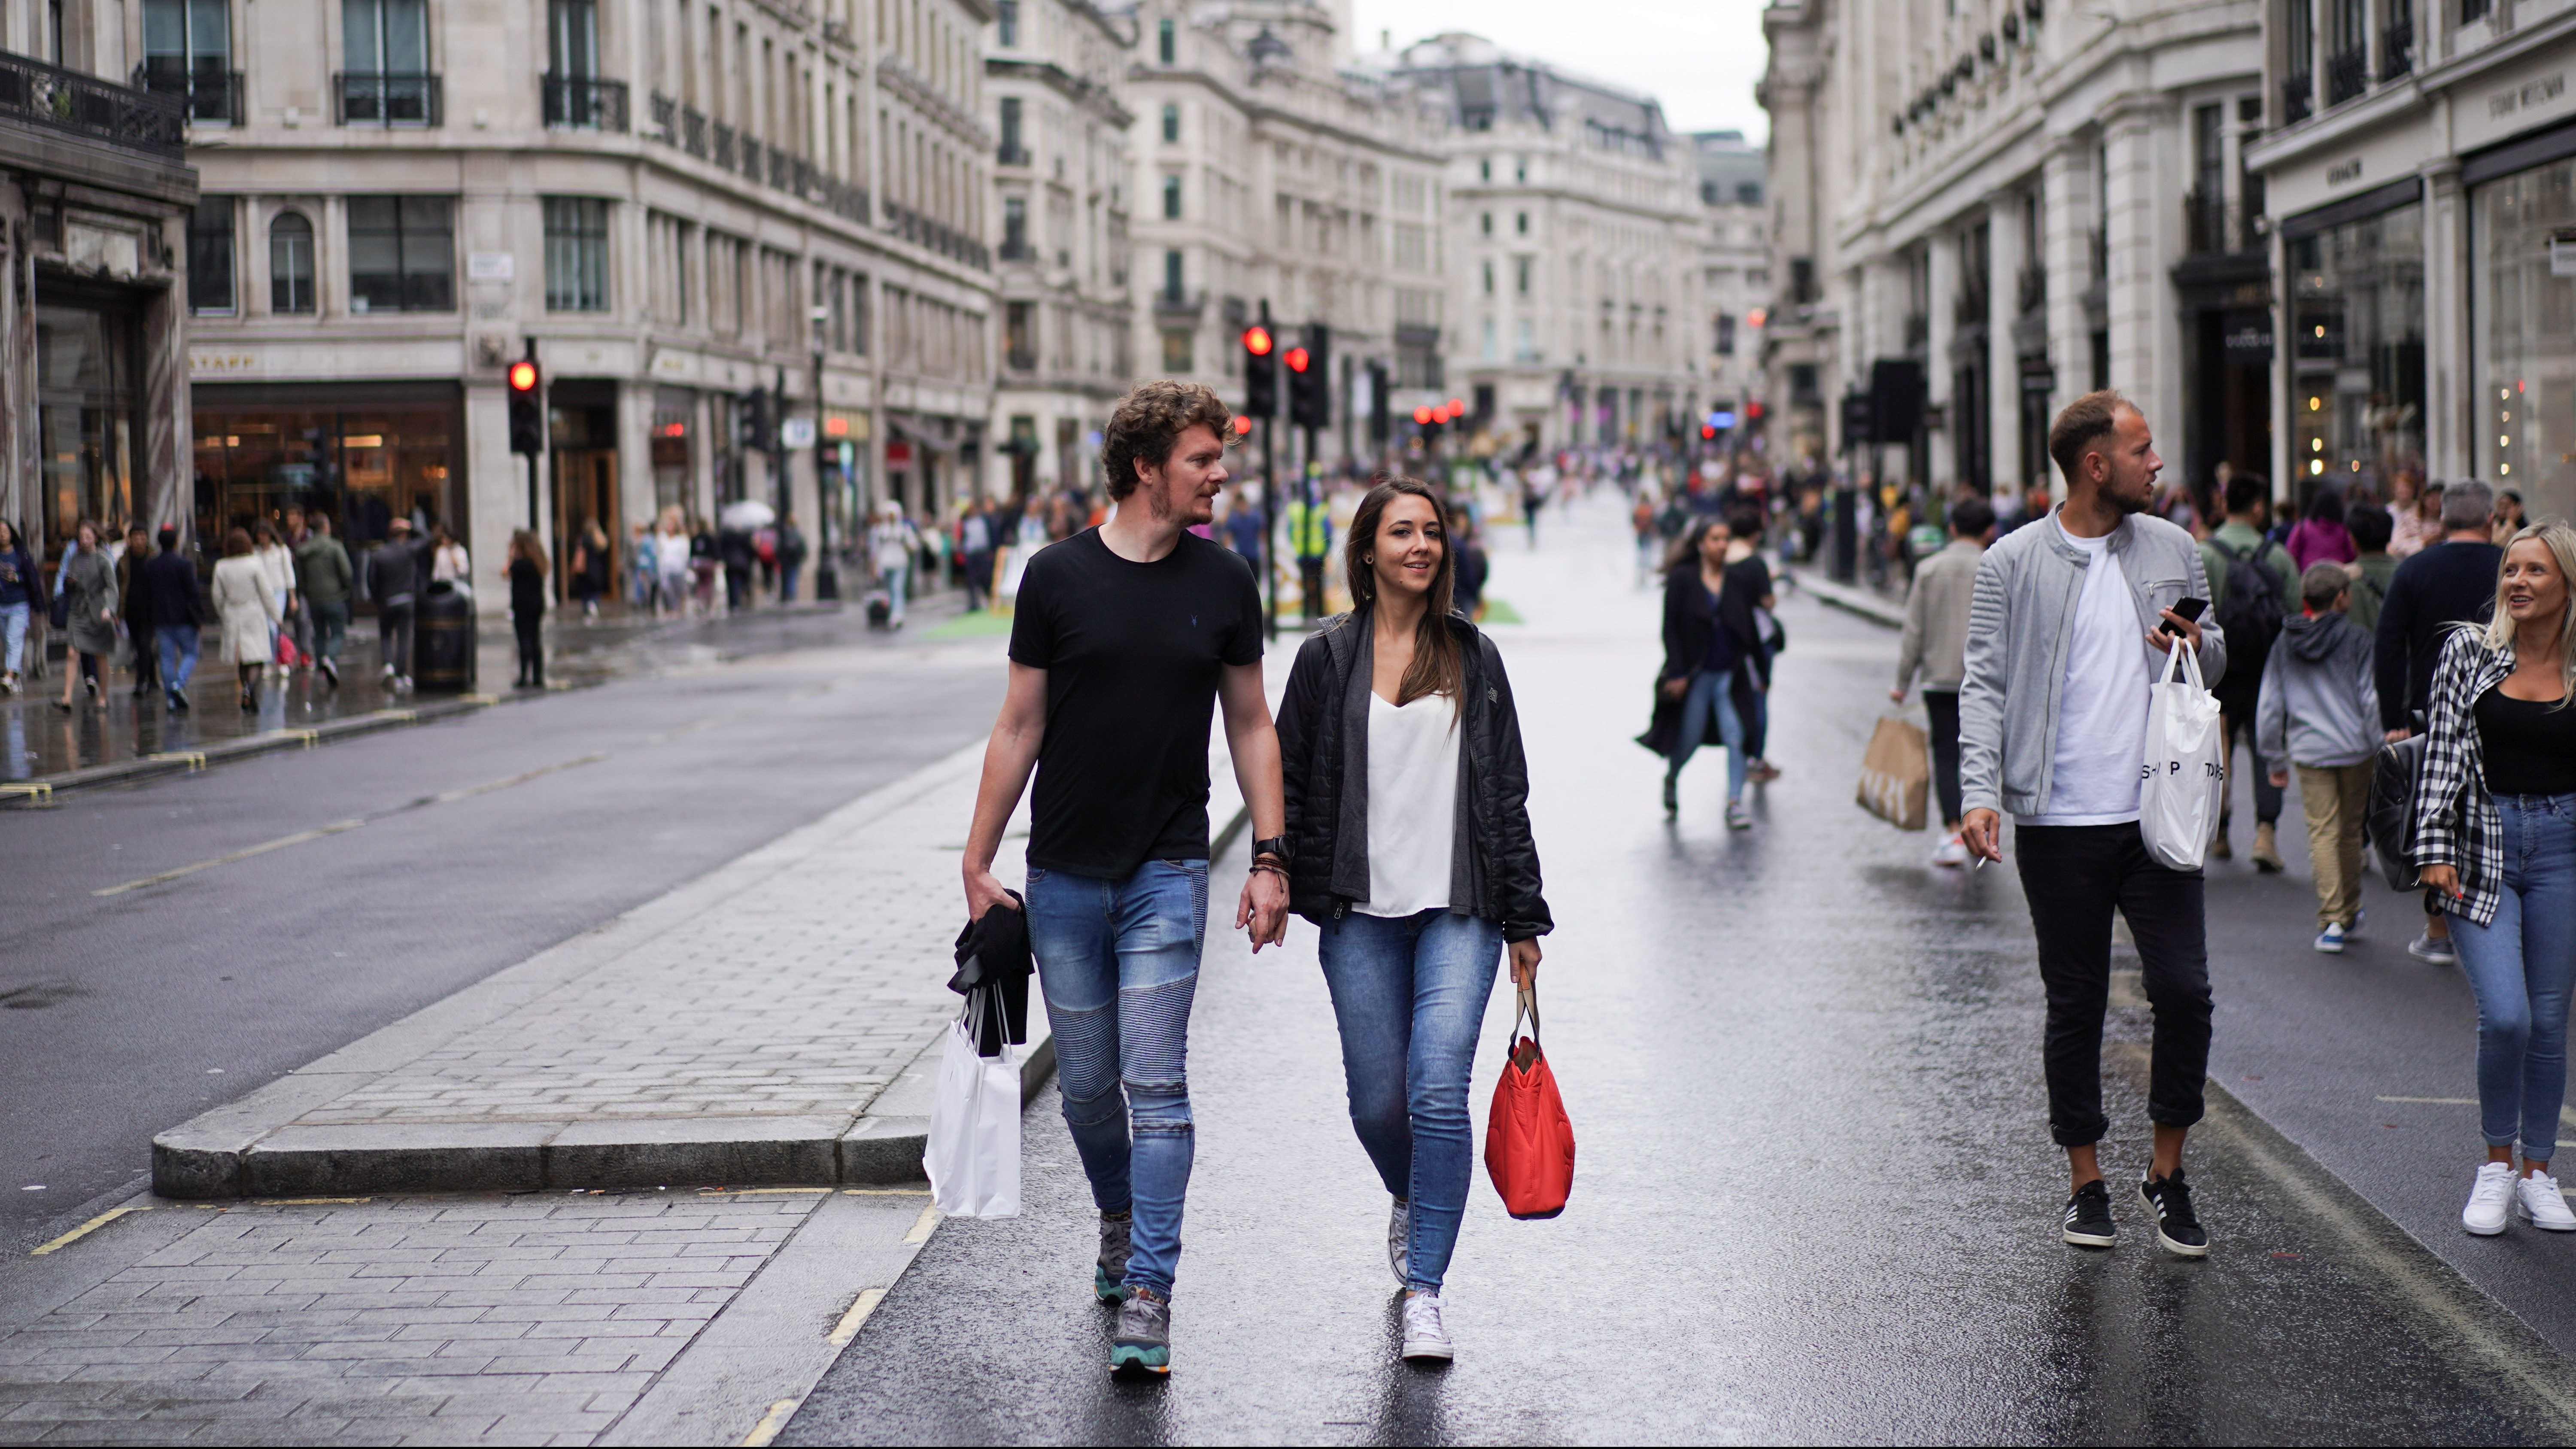 People walk down Regent Street after it was shut as part of 'Car Free Day' in London